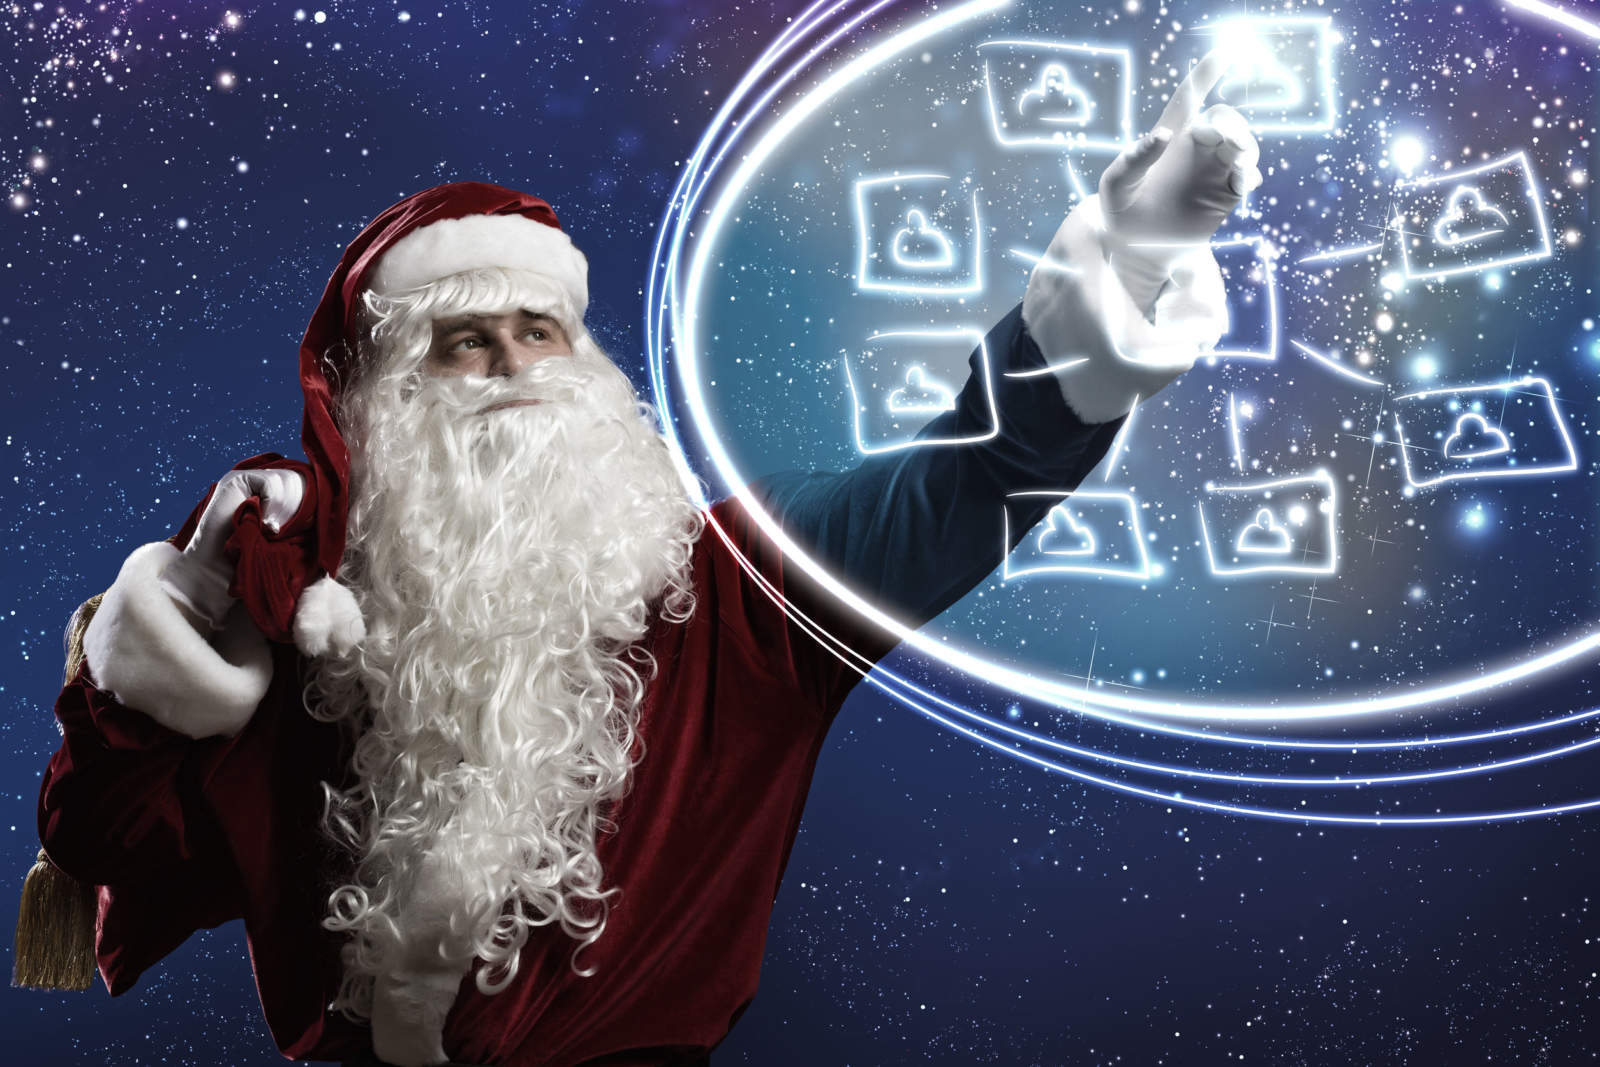 Making Social Media Marketing Festive for the Holidays